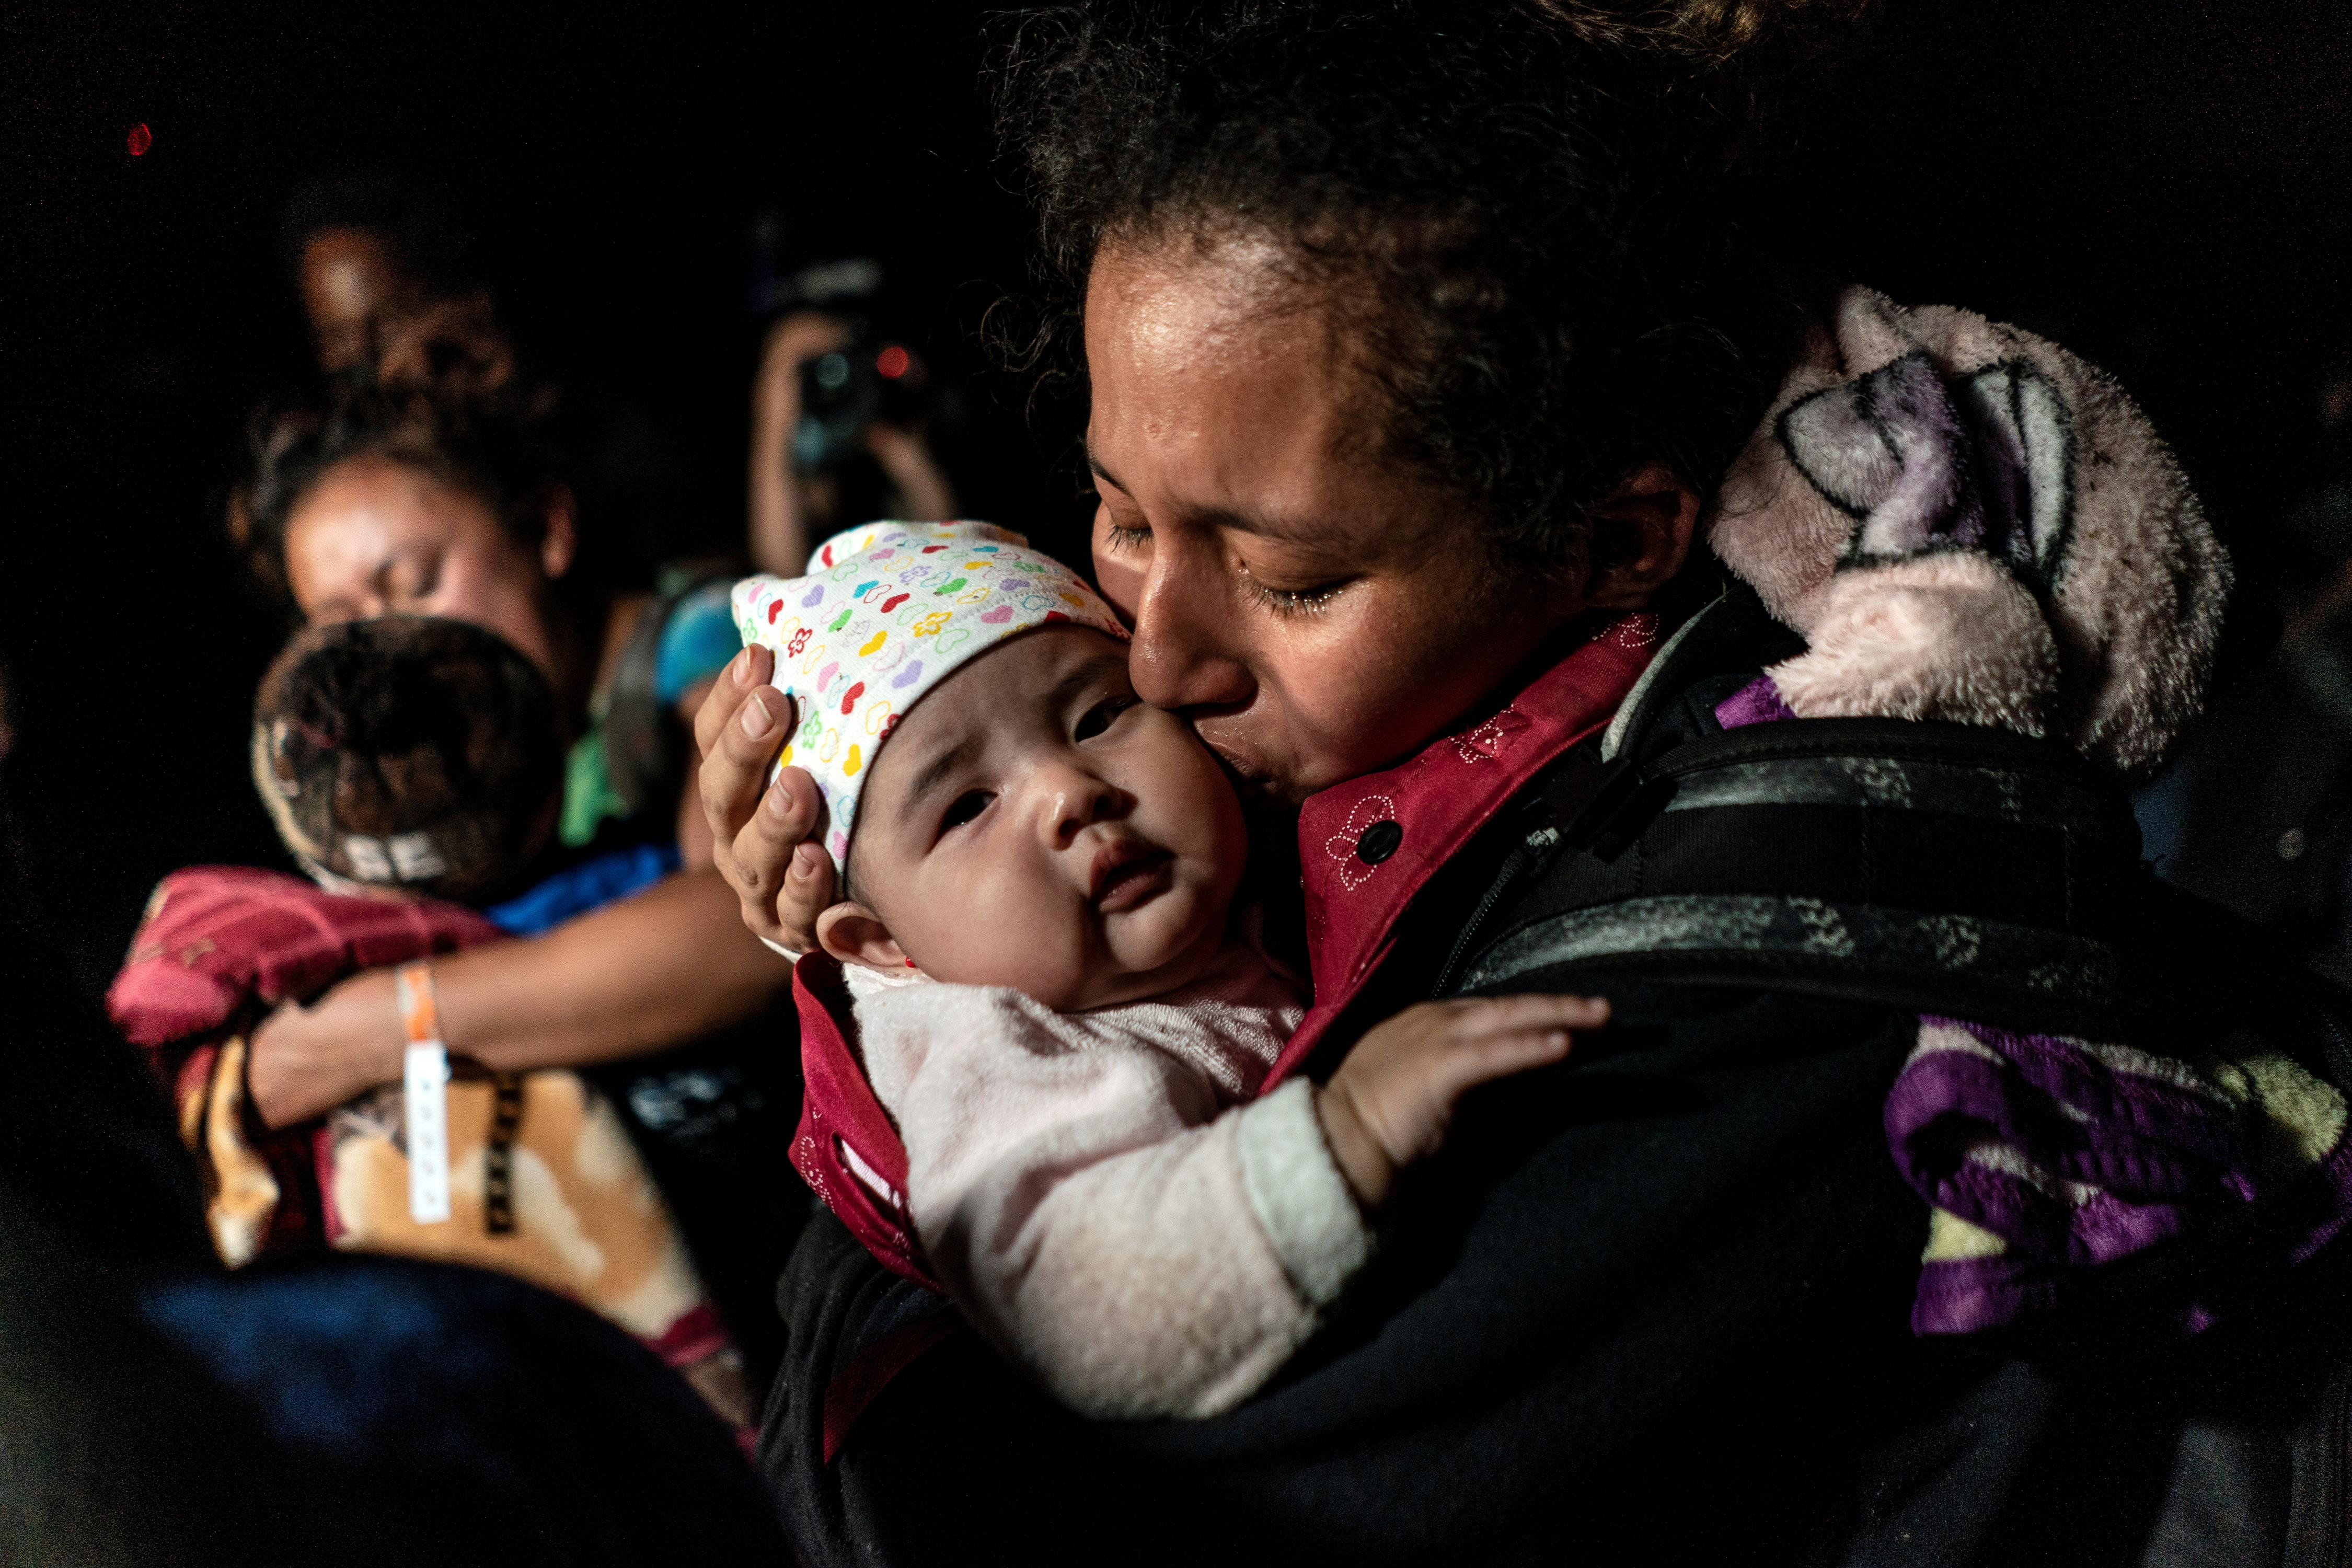 Ceidy, an asylum-seeking migrant mother from Guatemala, kisses her 3-month-old baby Bridget while waiting to be escorted by the U.S. Border Patrol agents after crossing the Rio Grande river into the United States from Mexico in Roma, Texas, U.S. April 7, 2021. Picture taken April 7, 2021. REUTERS/Go Nakamura/File Photo